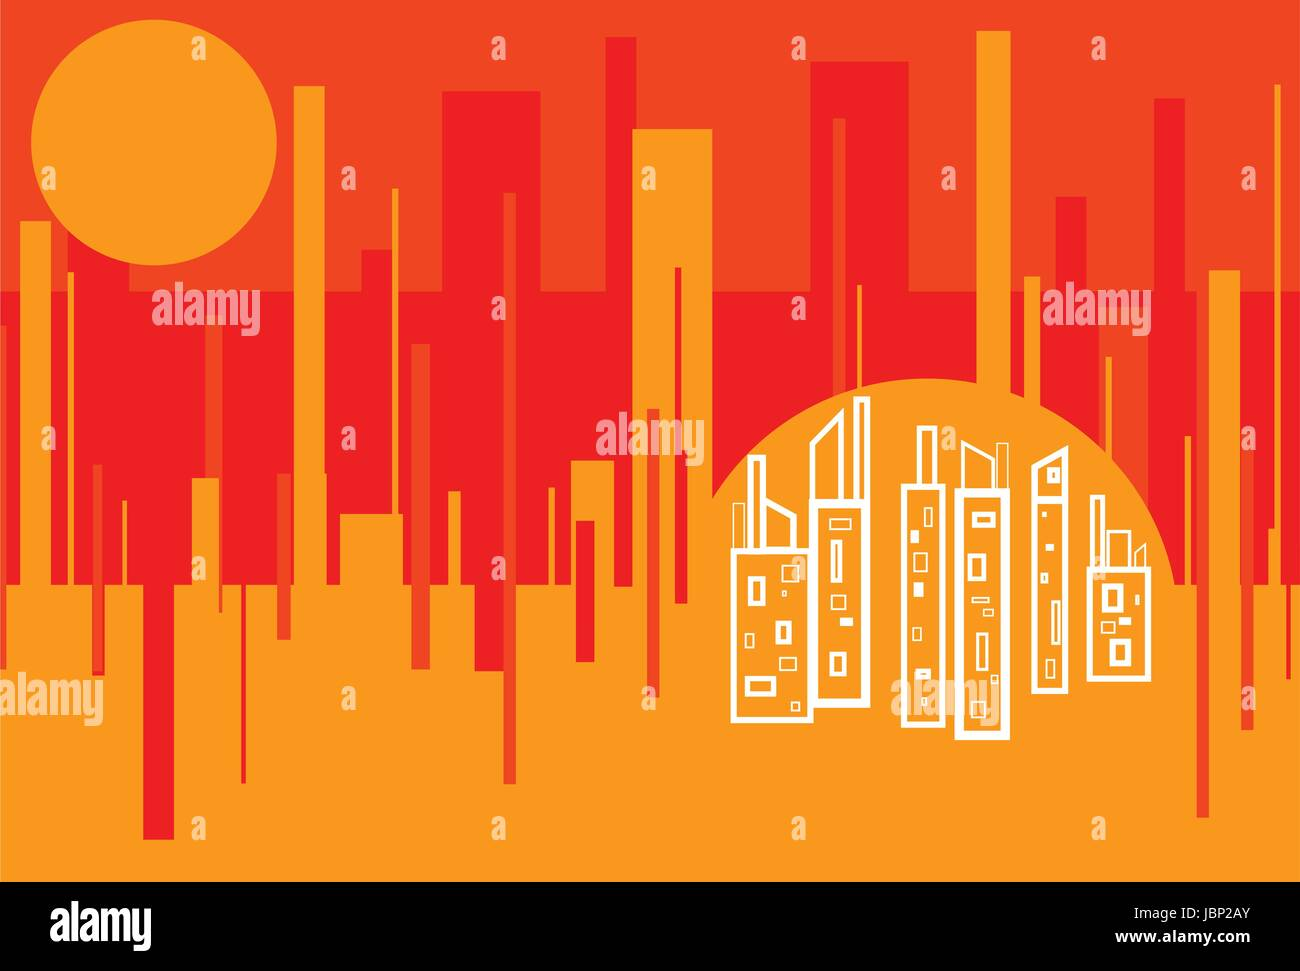 Red Hot City - Abstract Cityscape background featuring analogous red, orange, yellow color scheme - Stock Image